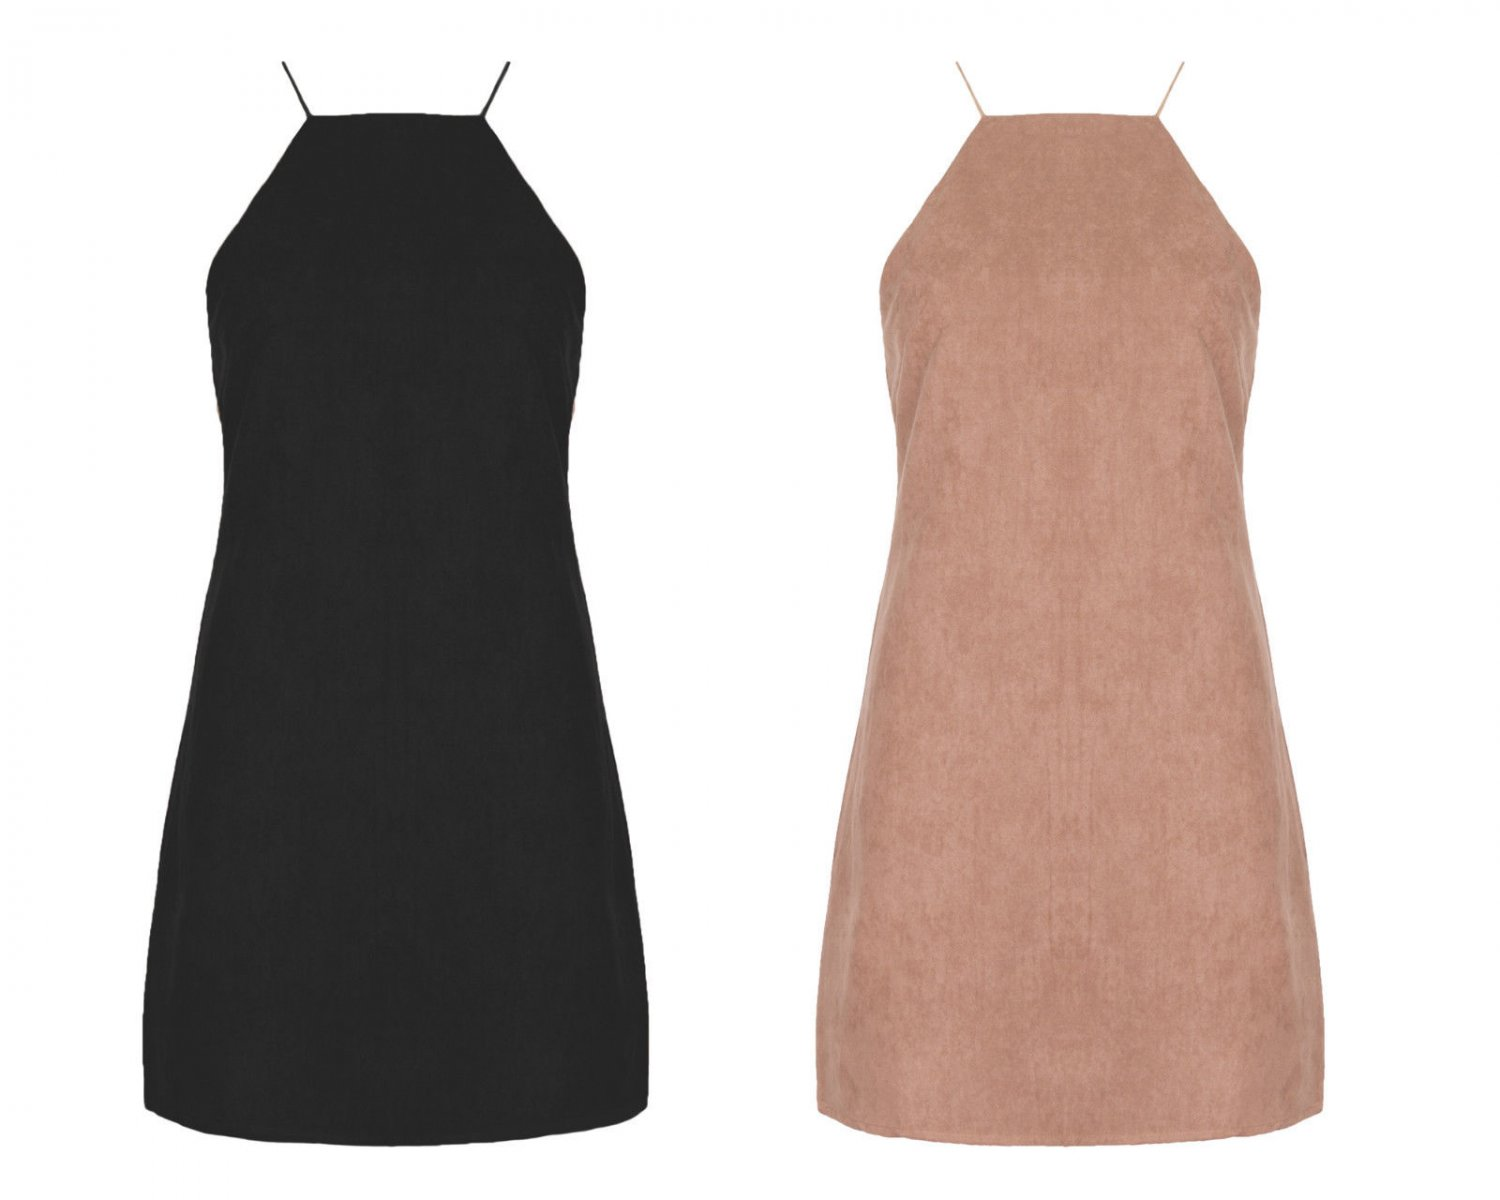 New Women Suede Mini Sexy Dress Rouleaux Straps Tunic Pinafore A Line UK Size 10 Tan